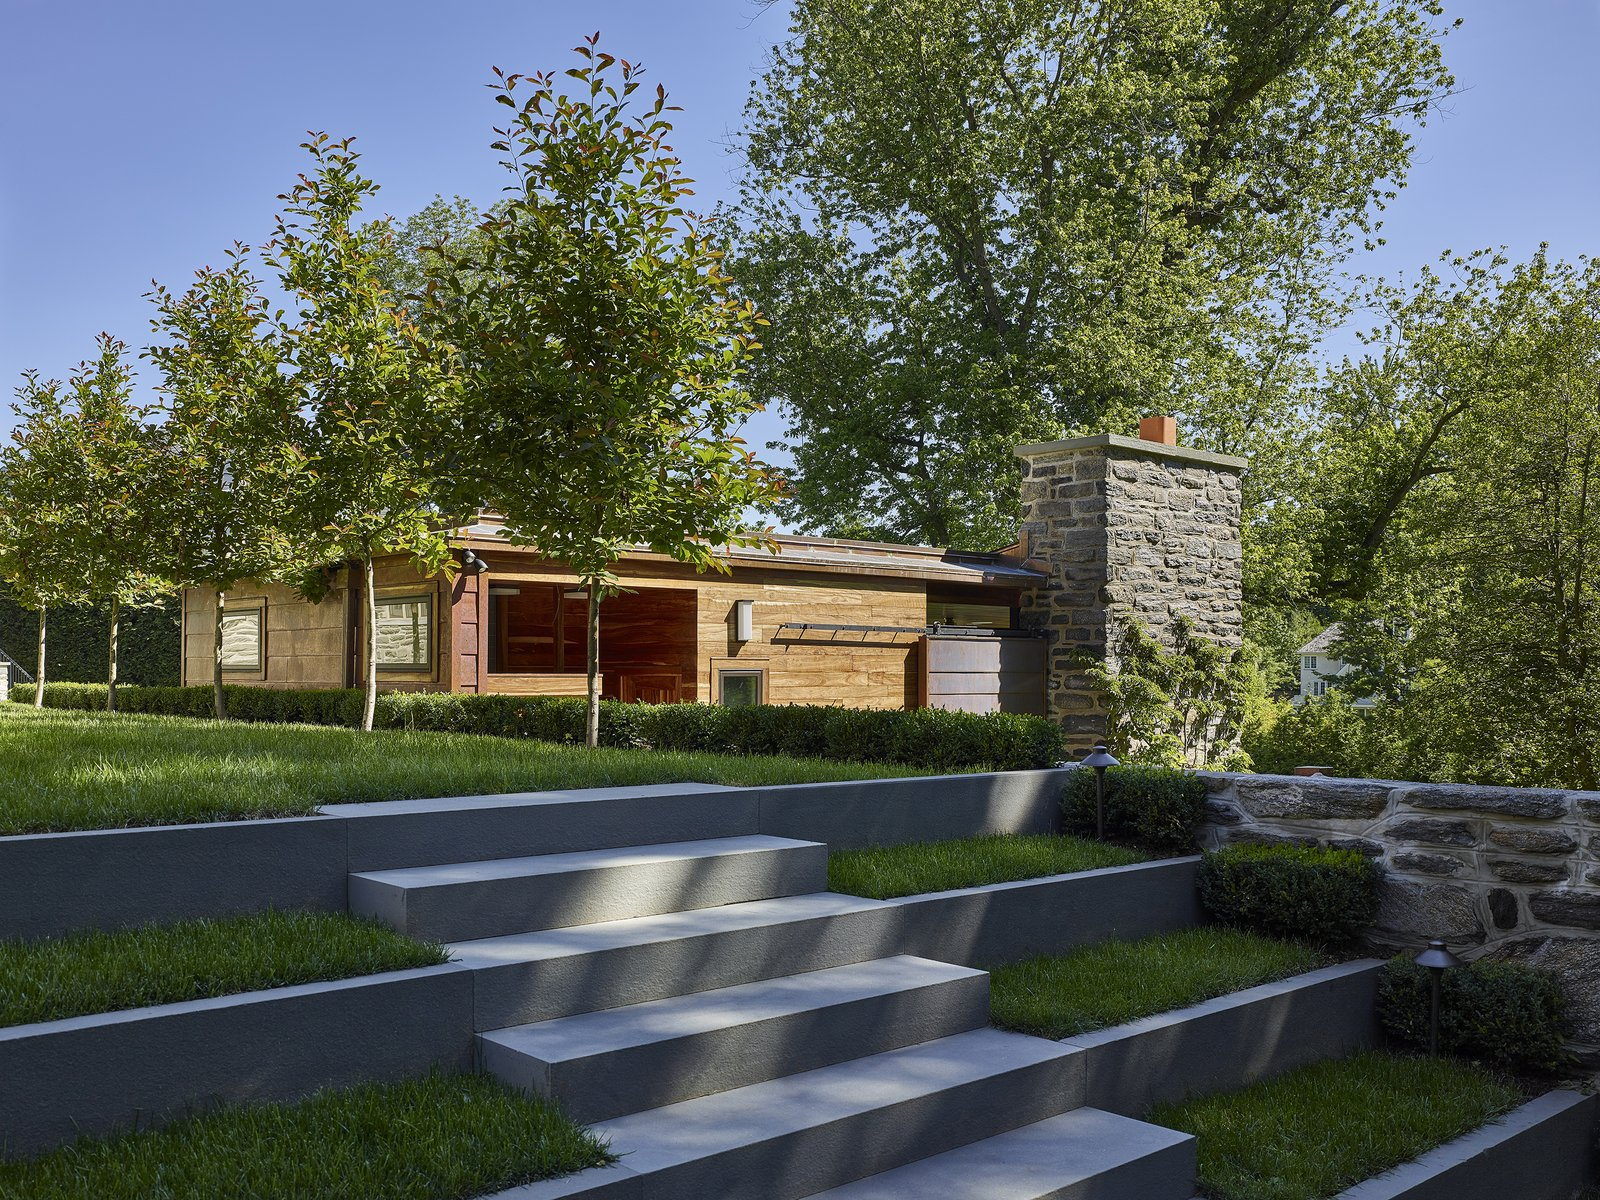 Outdoor, Side Yard, Shrubs, Trees, Stone Patio, Porch, Deck, Grass, and Walkways Stone terrace steps  Modern Pool House by Wyant Architecture